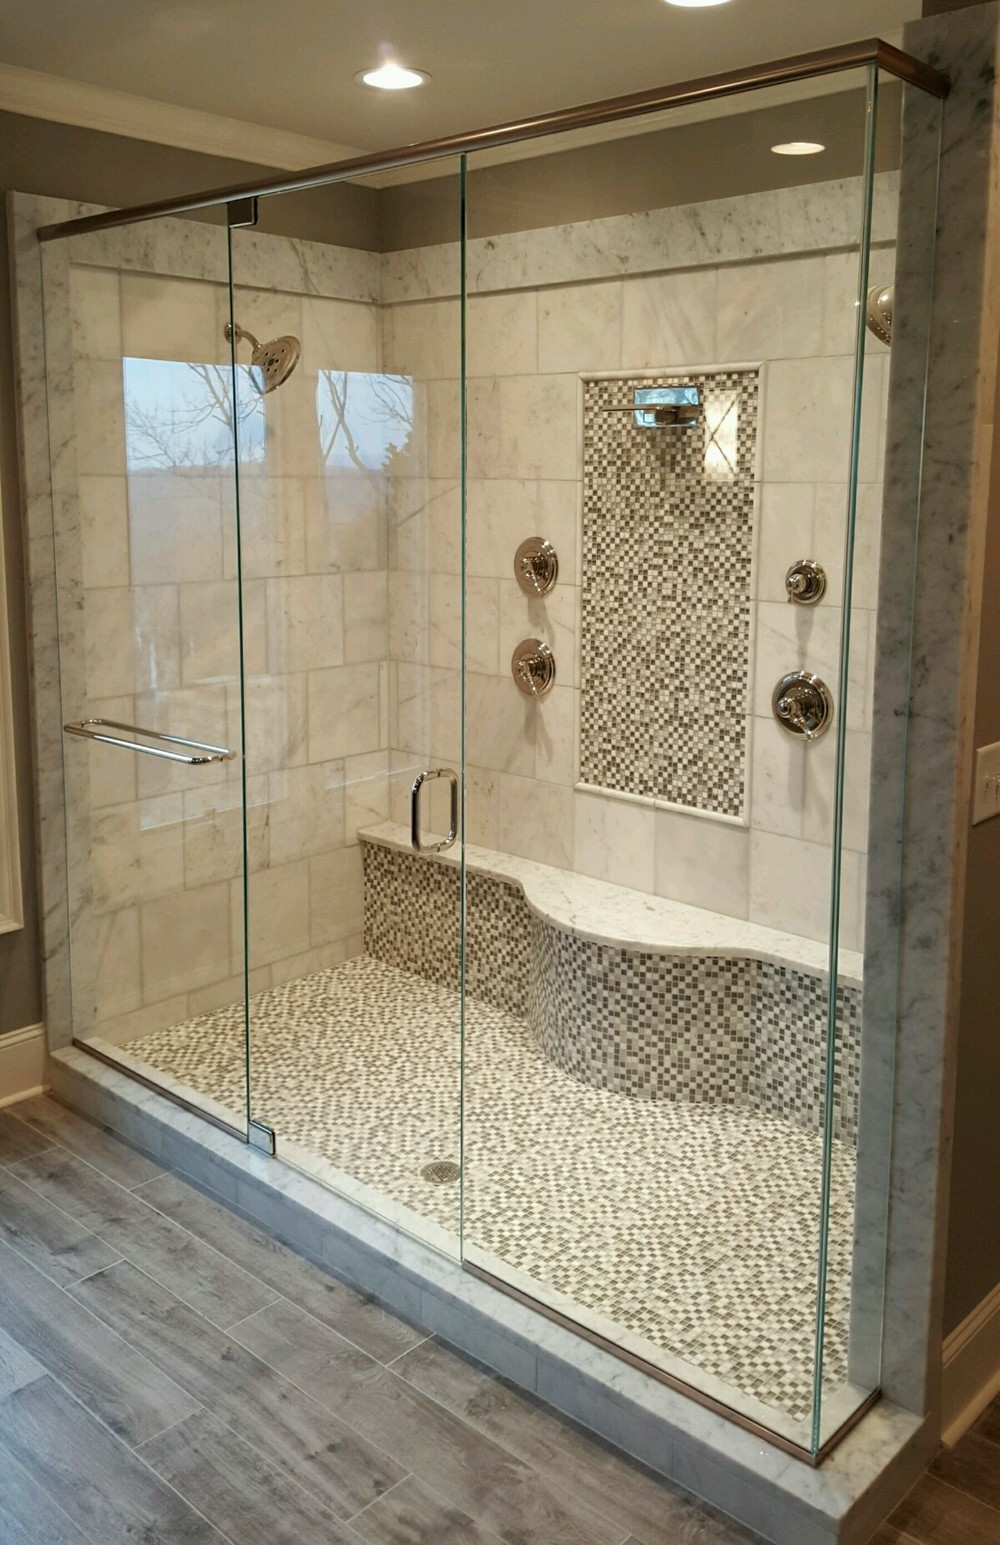 Let Us Help Make Your Bathroom Great By Adding A Beautiful New Shower Door,  Or Great New Mirrors!